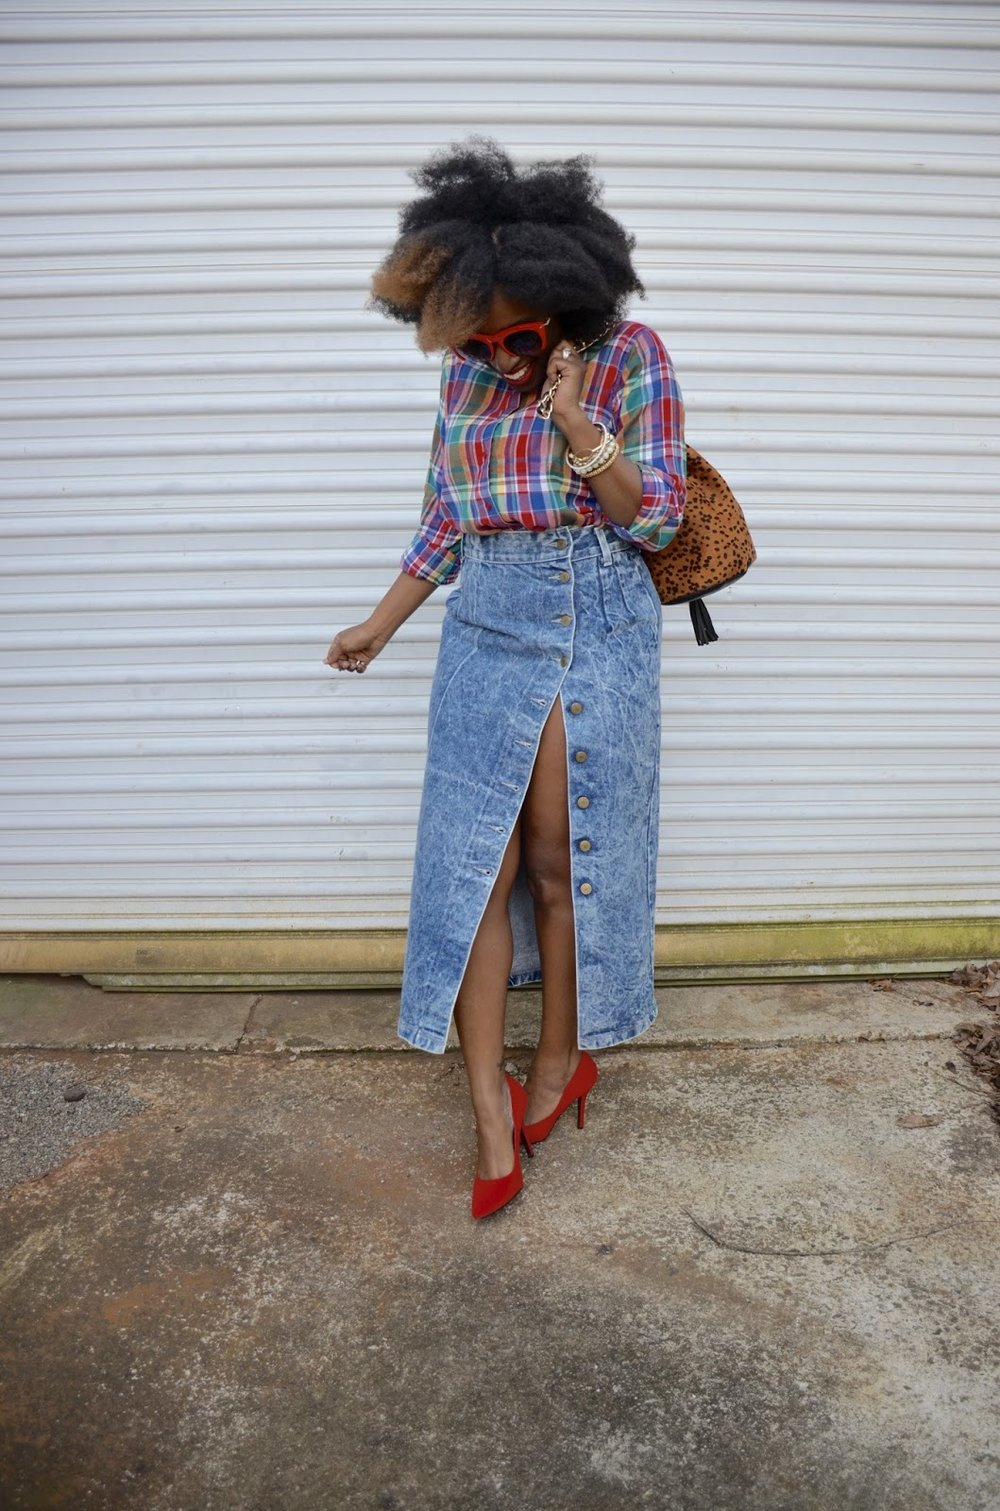 Atlanta blogger, Atlanta style blogger, style blogger, Stylist, Natural girl fashion, vintage street fashion, acid wash skirt, vintage denim, red sunglasses, red pumps, print bucket handbag, black girls killing it, fashion blogger, street style, street fashion, natural hair